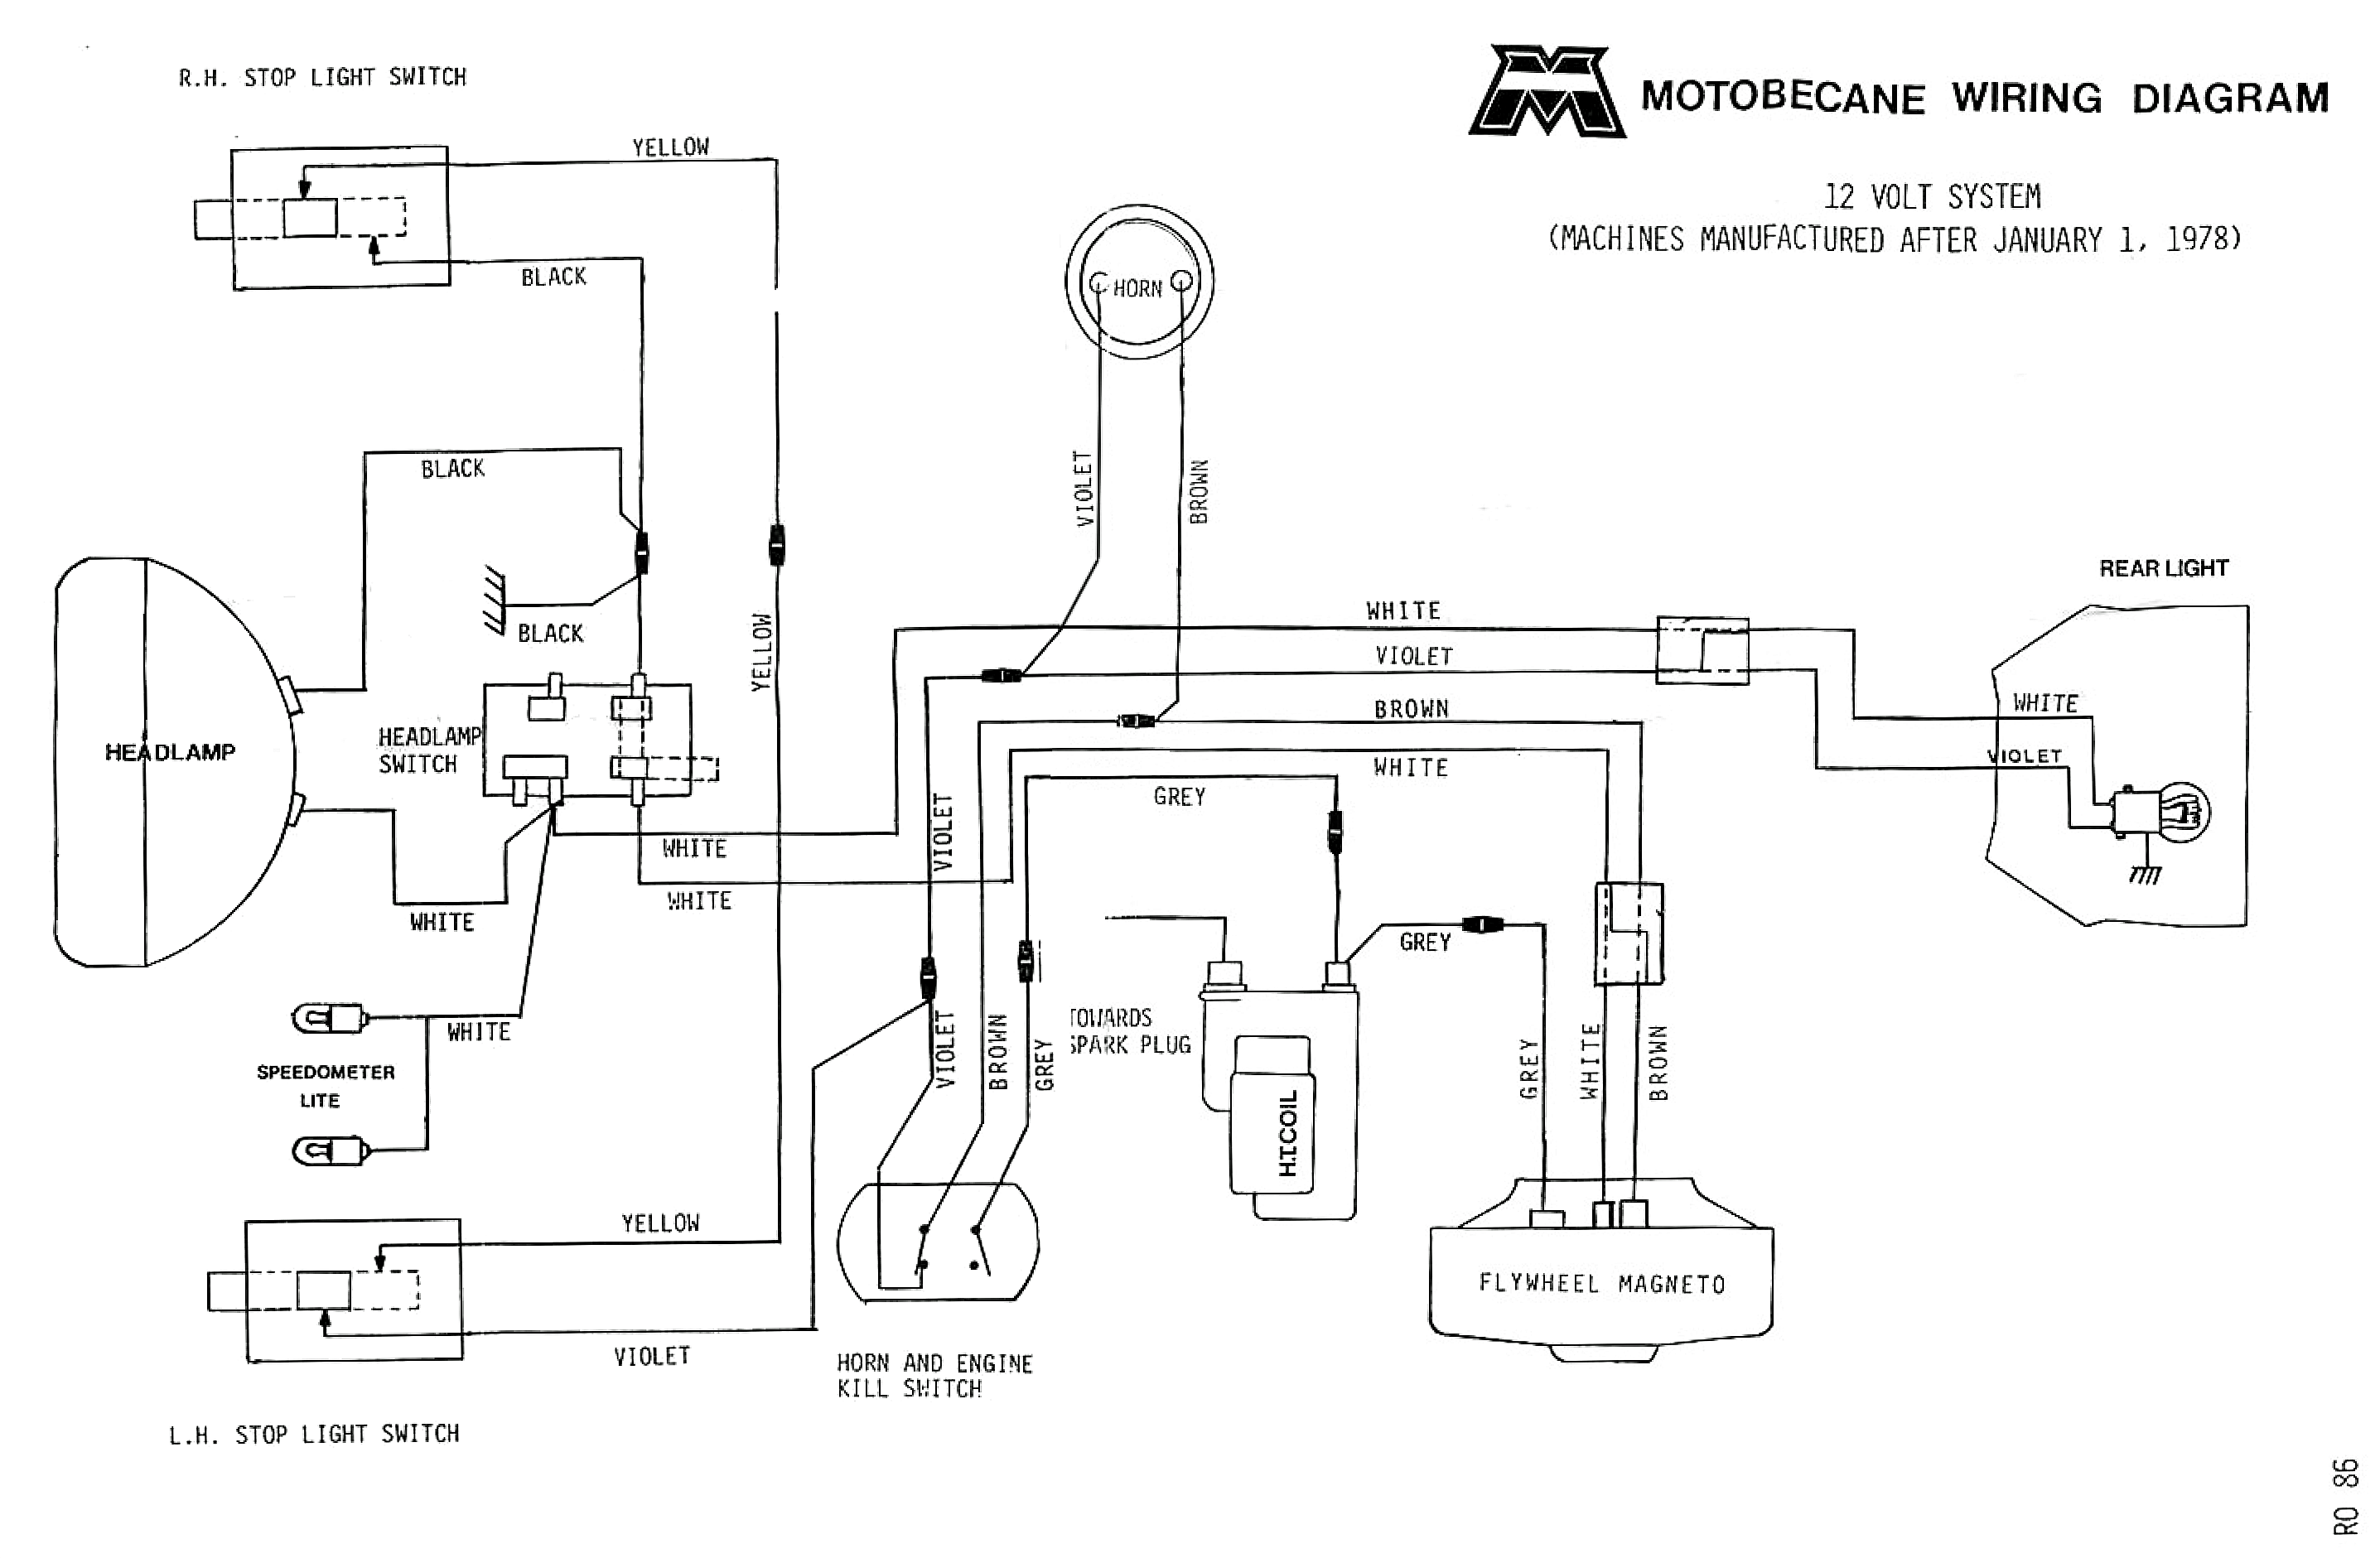 Motobecane wiring diagrams - Moped Wiki